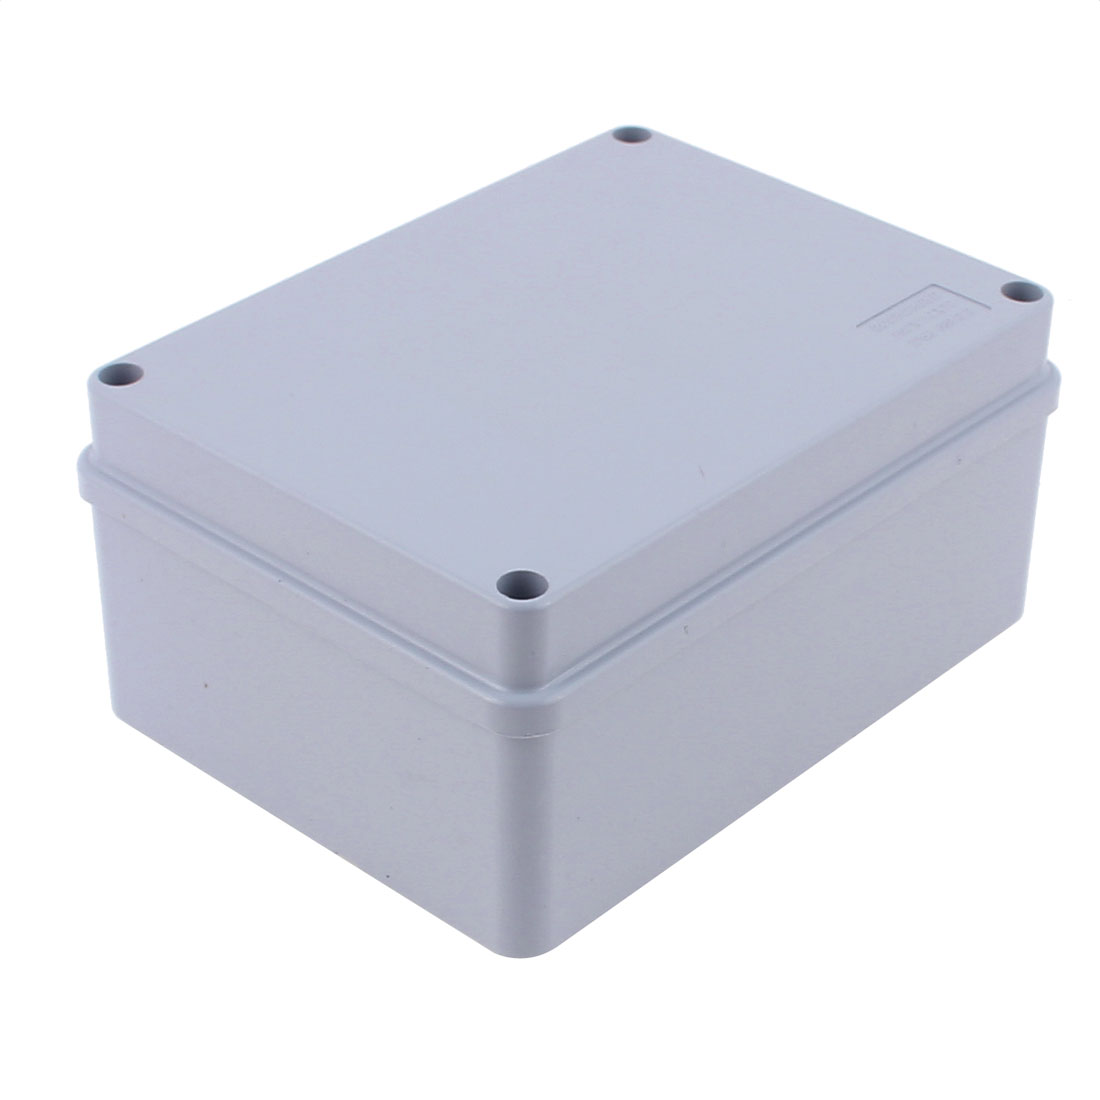 150 x 110 x 70mm Dustproof IP65 Junction Box DIY Sealed Connecting Box Enclosure